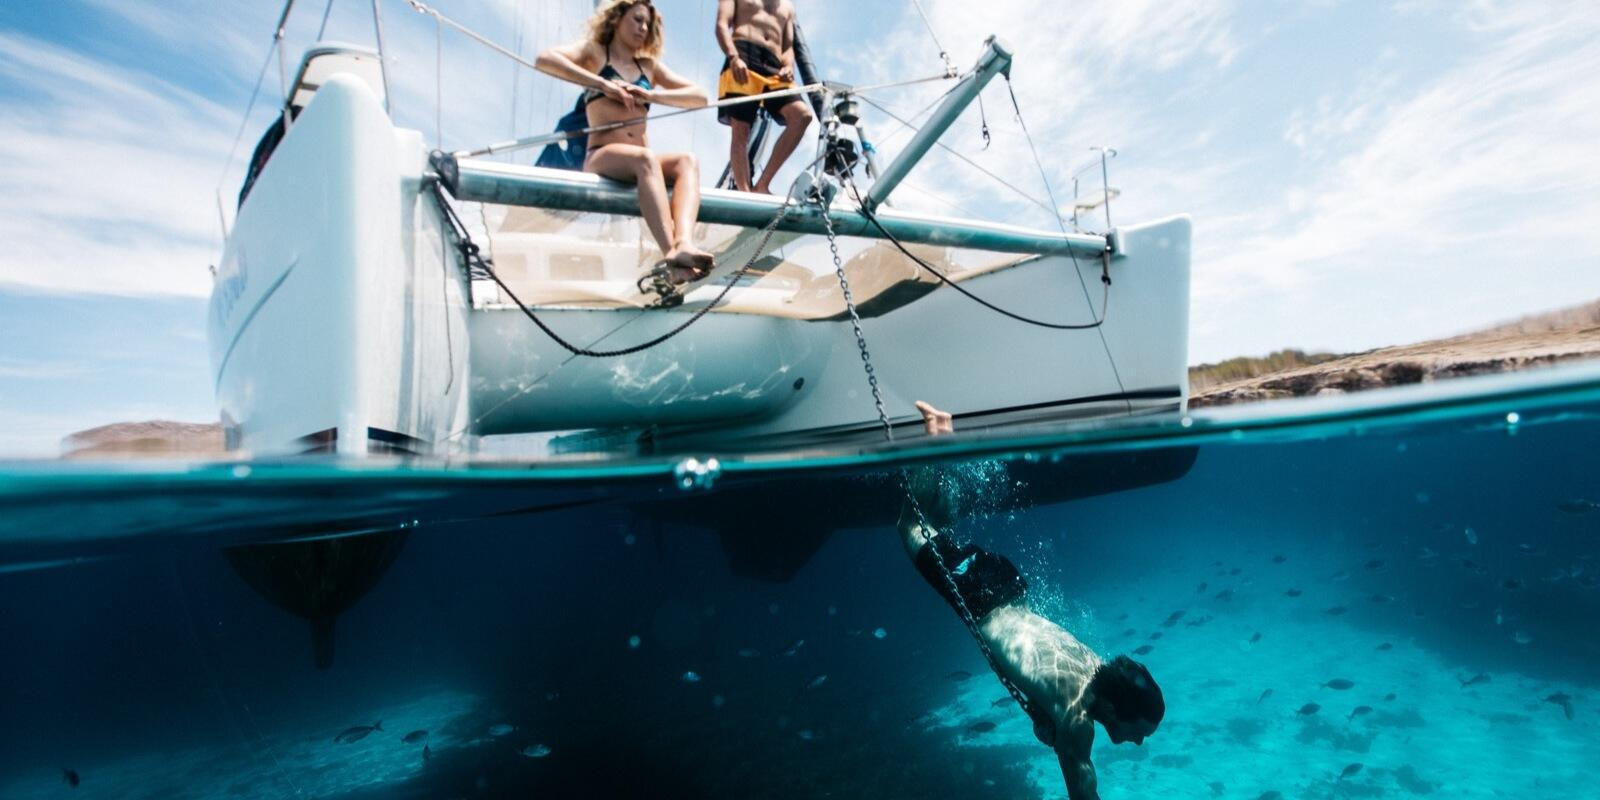 A week in the Aeolian islands by catamaran in the name of relaxation, sea and sun